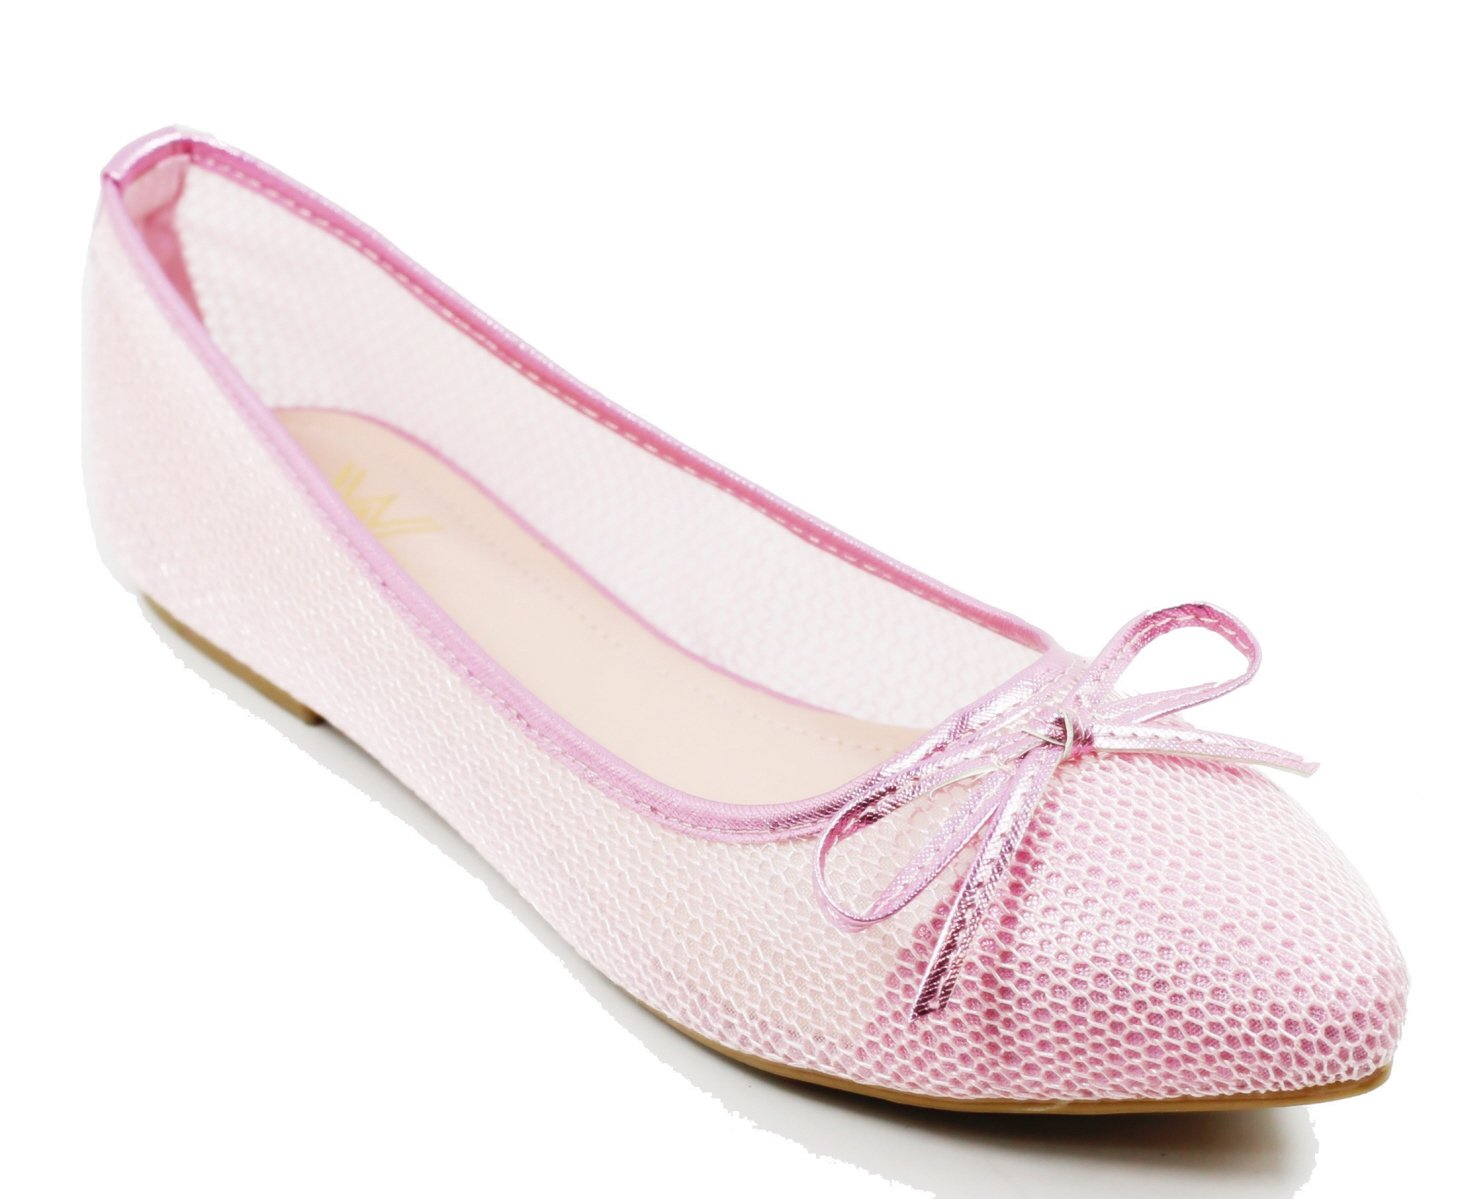 Walstar wedding shoes for bride Flat Shoes Mesh Flat Shoes B073WJ9NJG 8.5 B(M) US|Pink